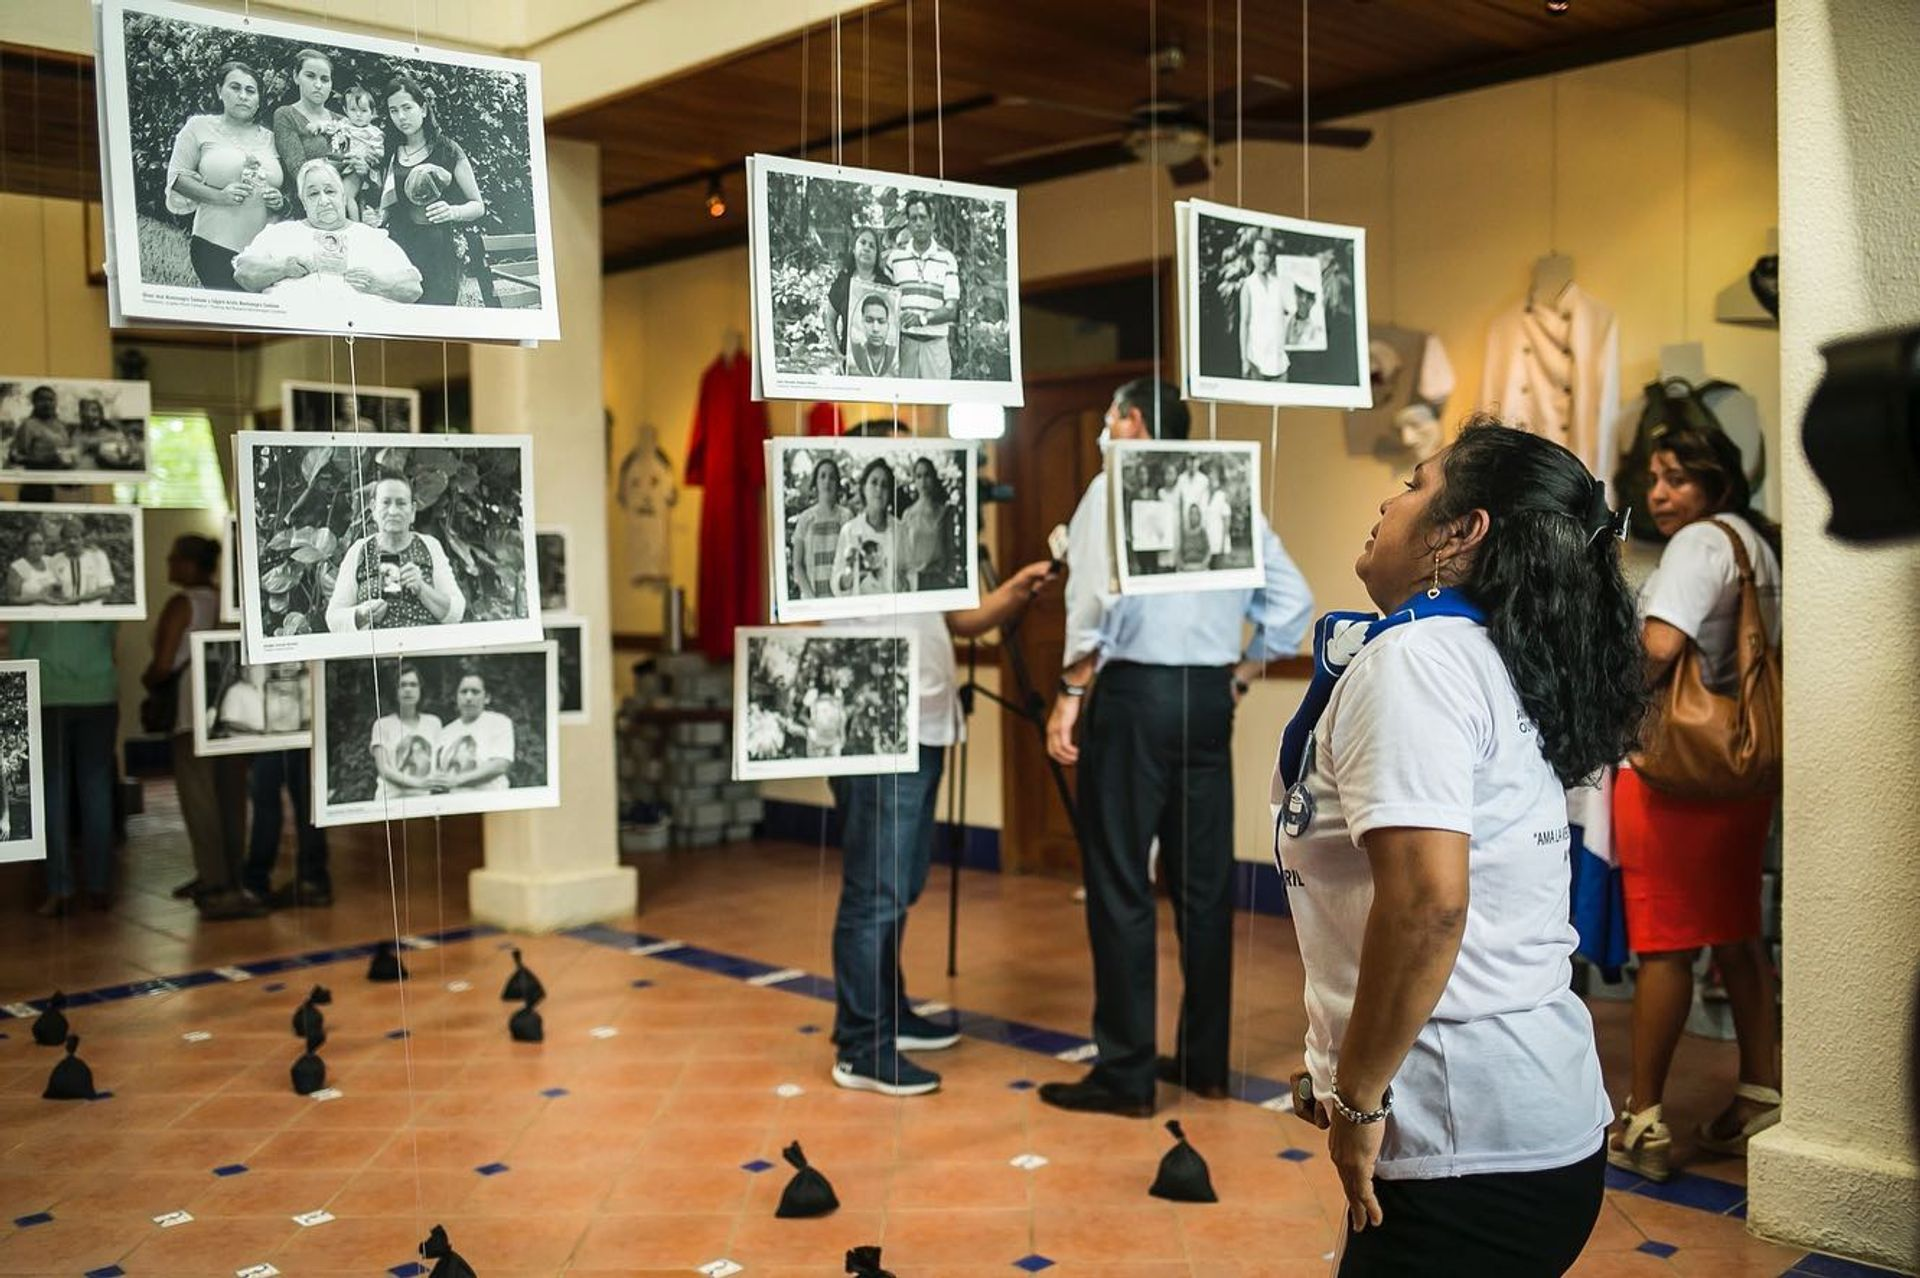 The Museum of Memory Against Impunity was open to visitors in galleries provided by Managua's Institute of History for Nicaragua and Central America through February 2020